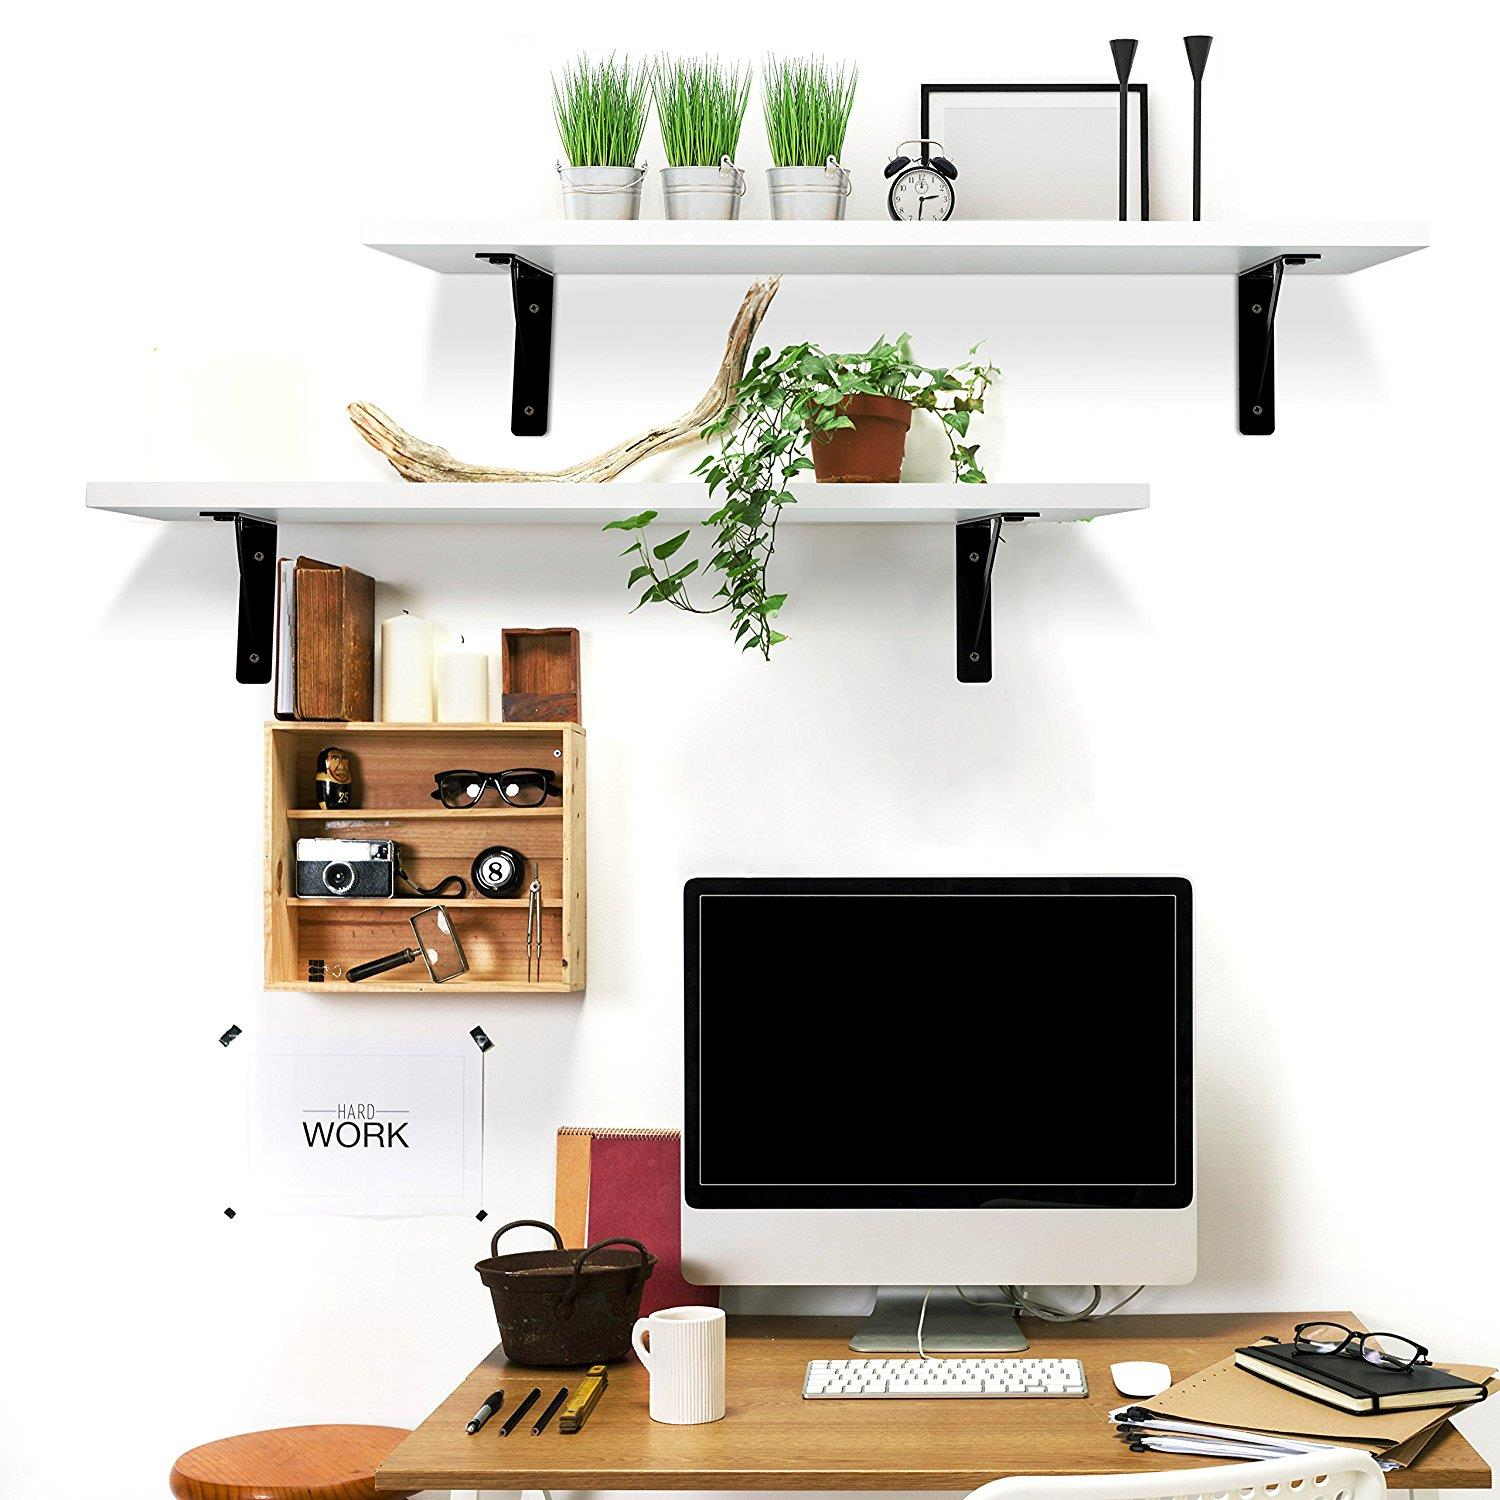 Details about New 2 Display Ledge Shelf Floating Shelves Kitchen Living  Room Wall Mounted Rack